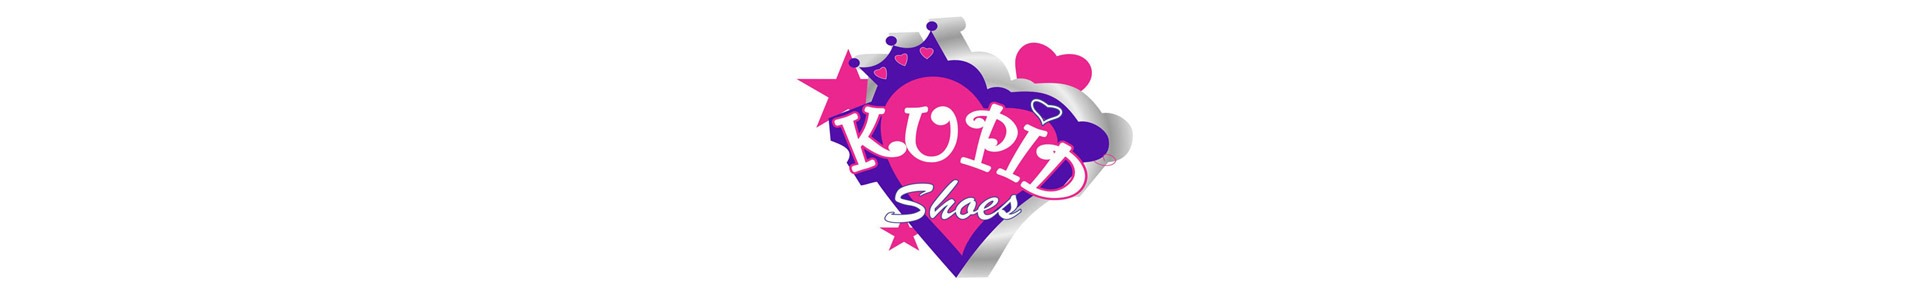 Kupid-Shoes